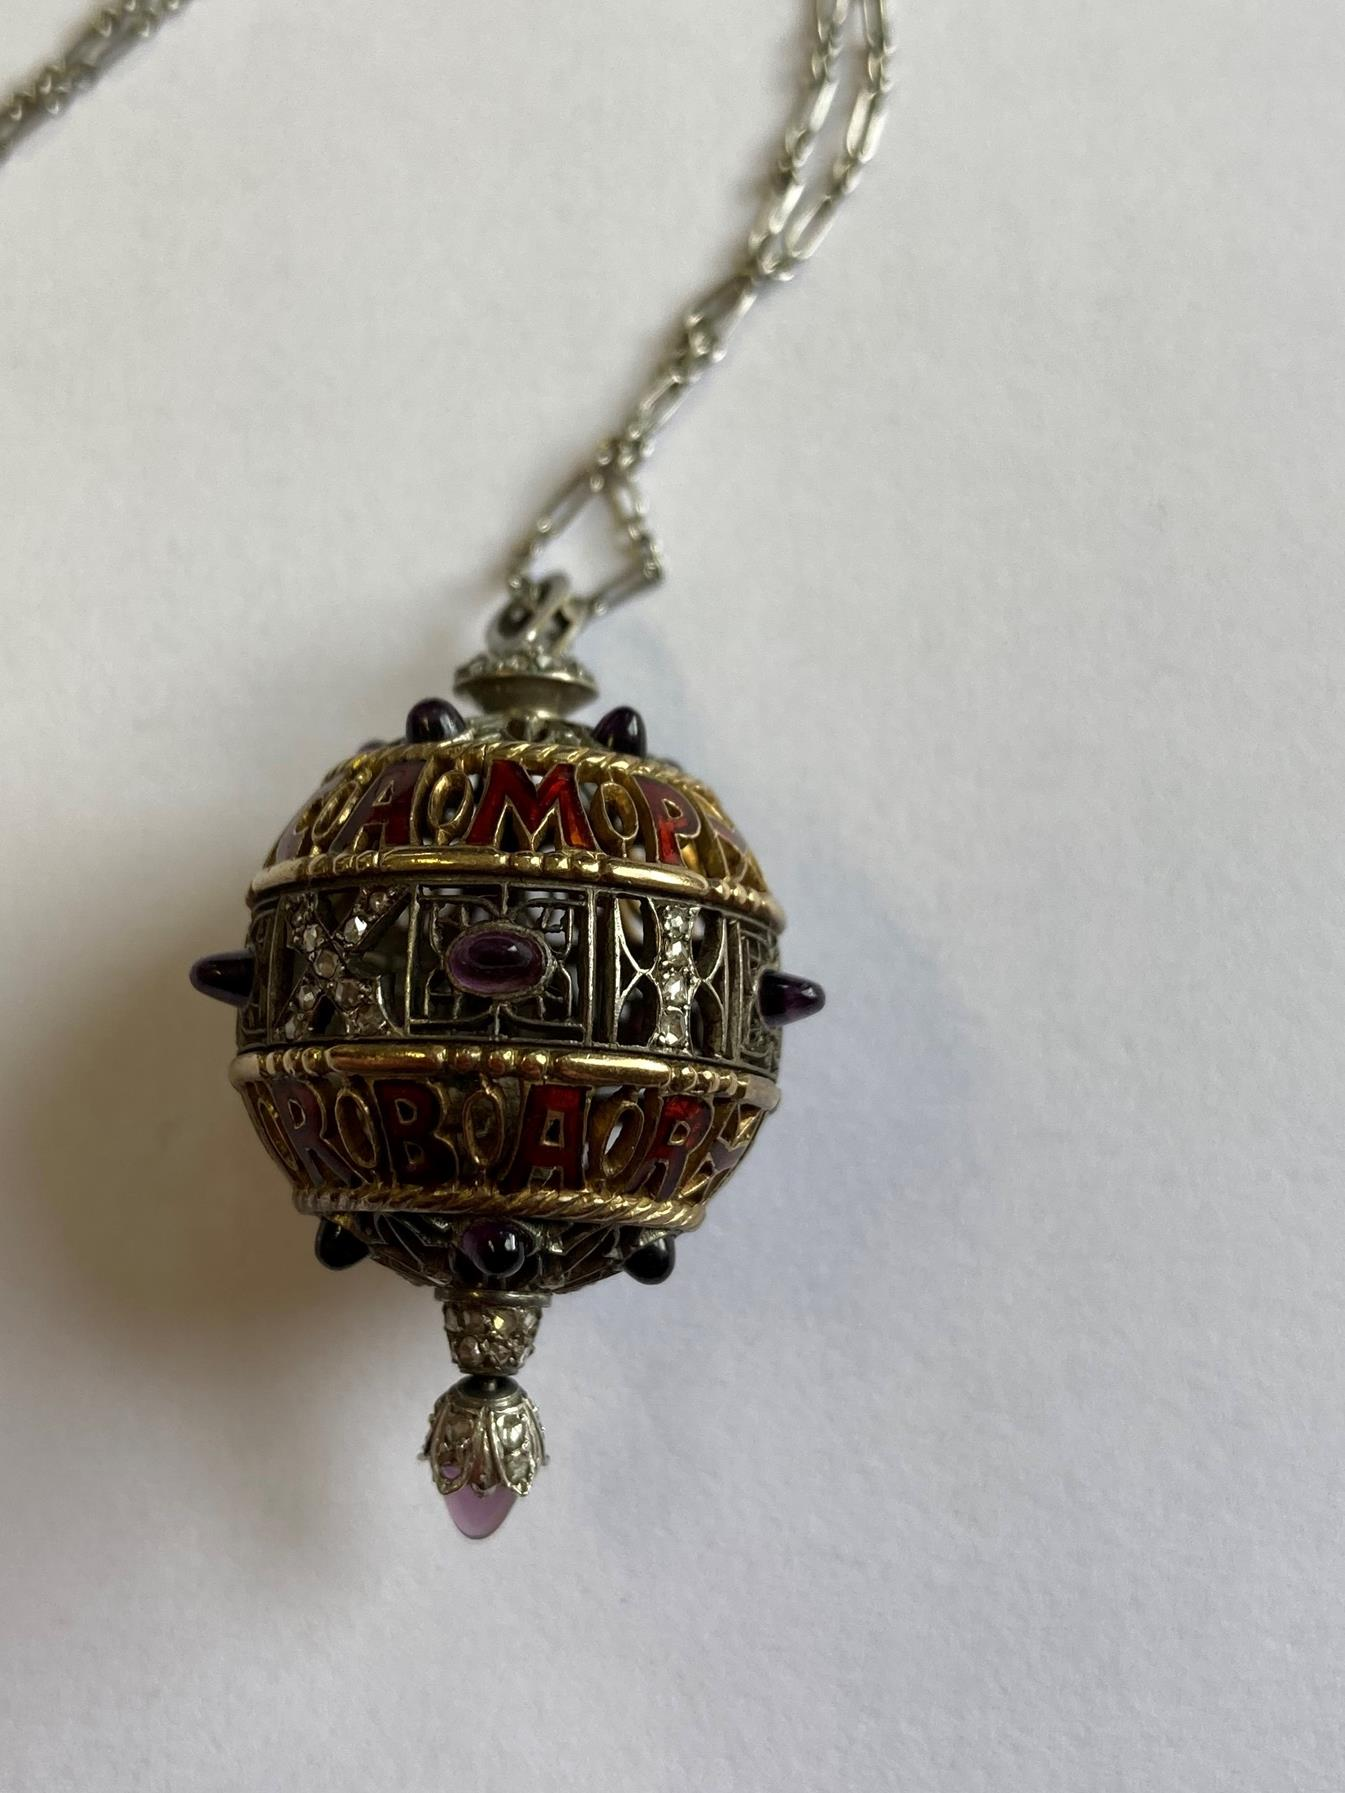 An Amethyst, Diamond and Enamel Pendant on Chain, 1911, the openwork ball with red enamel - Image 5 of 8